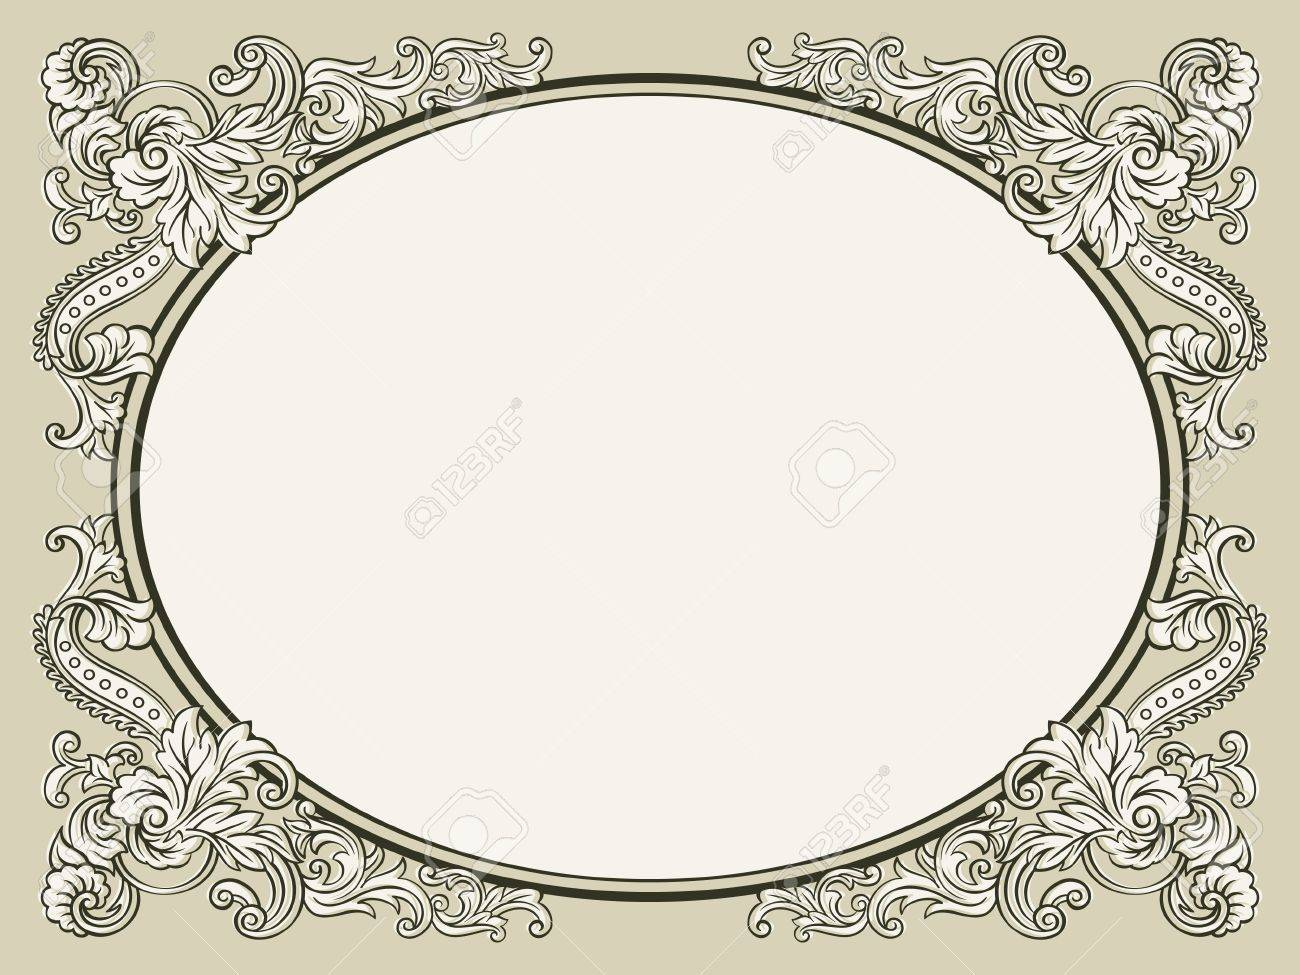 Oval vintage floral decorated bookish frame Stock Vector - 12326993